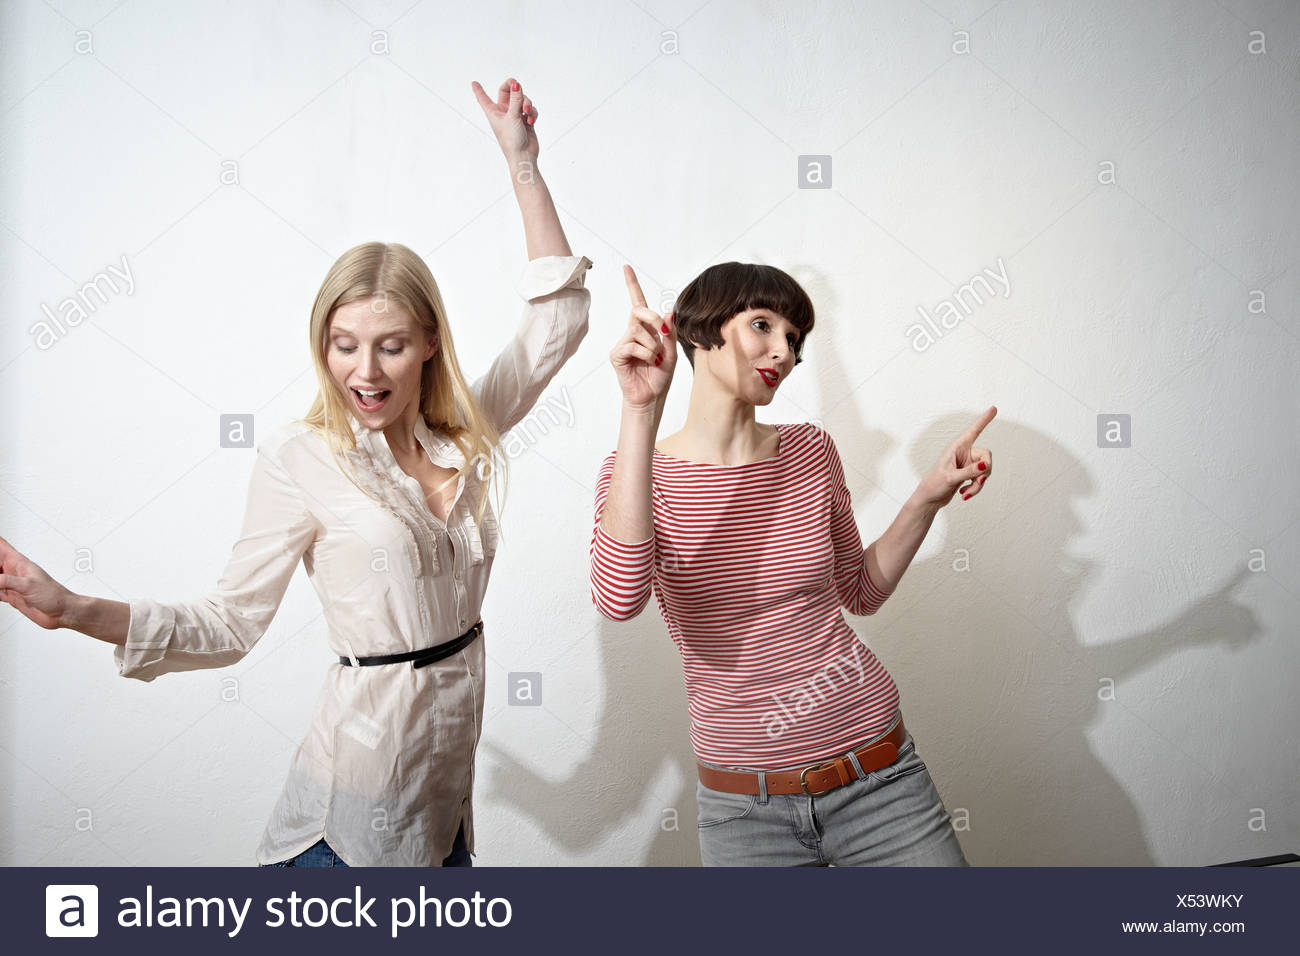 Germany, Cologne, Young women having fun, smiling - Stock Image